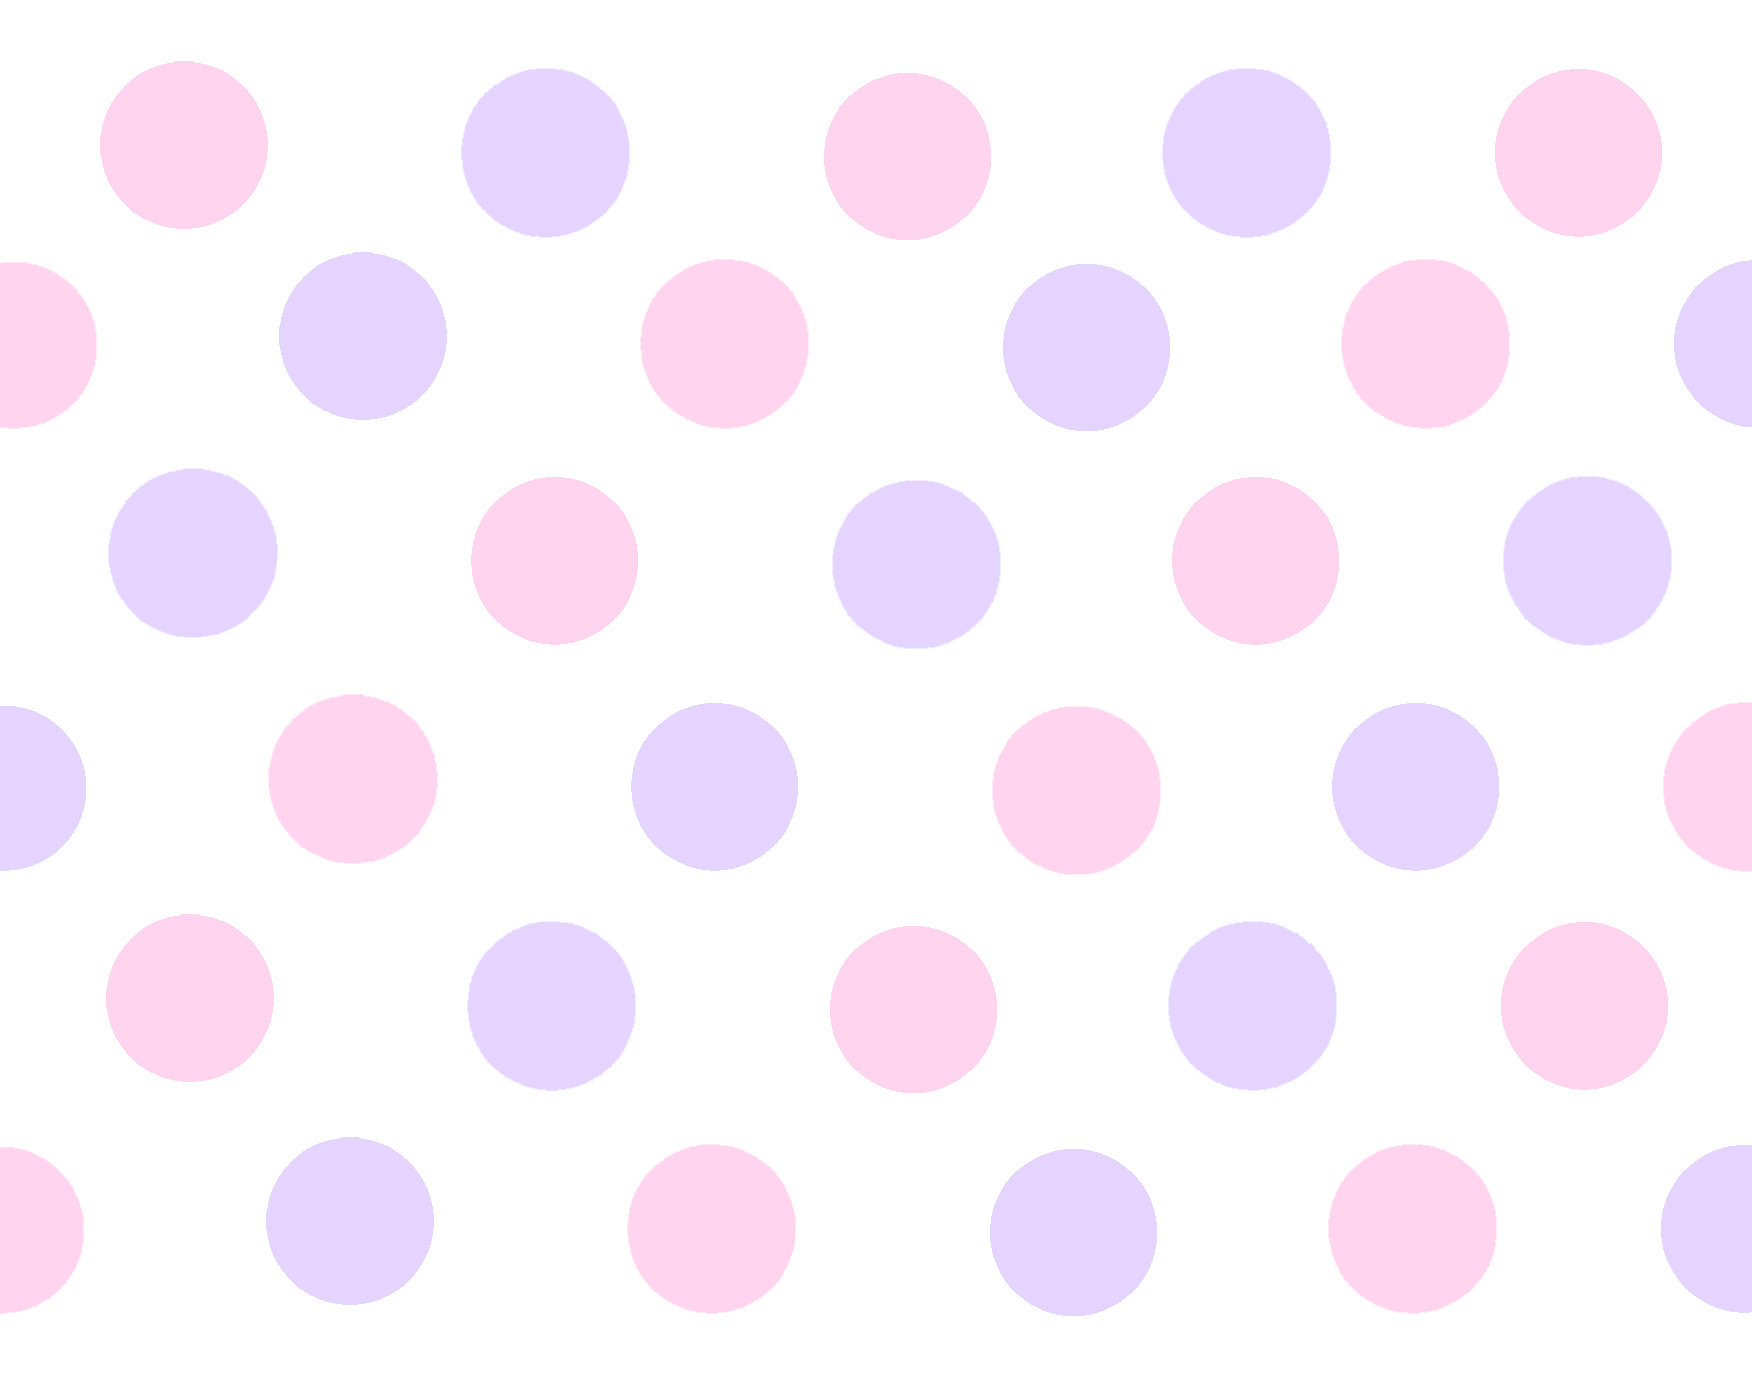 polka dots wallpaper - photo #48